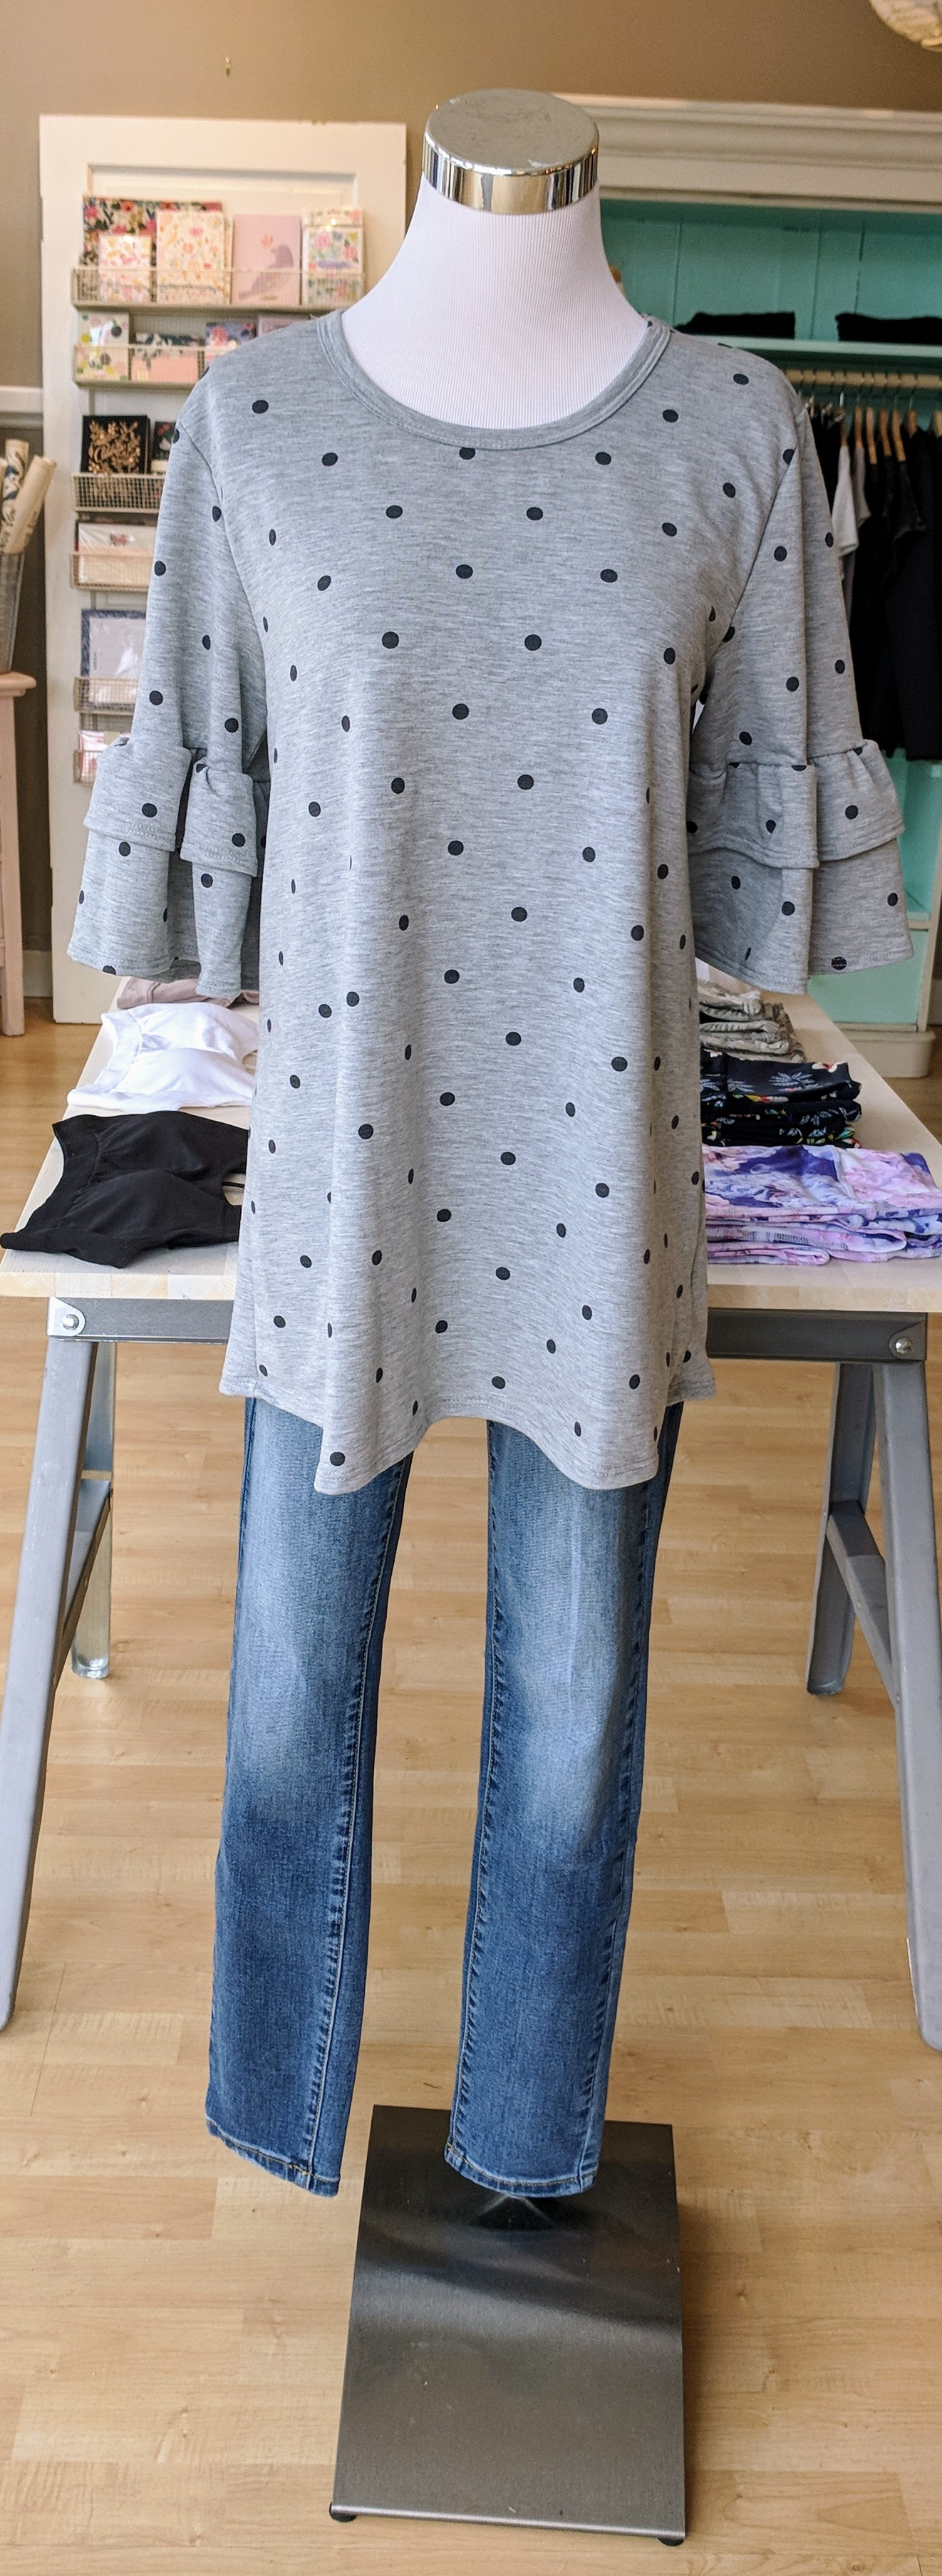 Grey polka dot top with bell sleeves $34